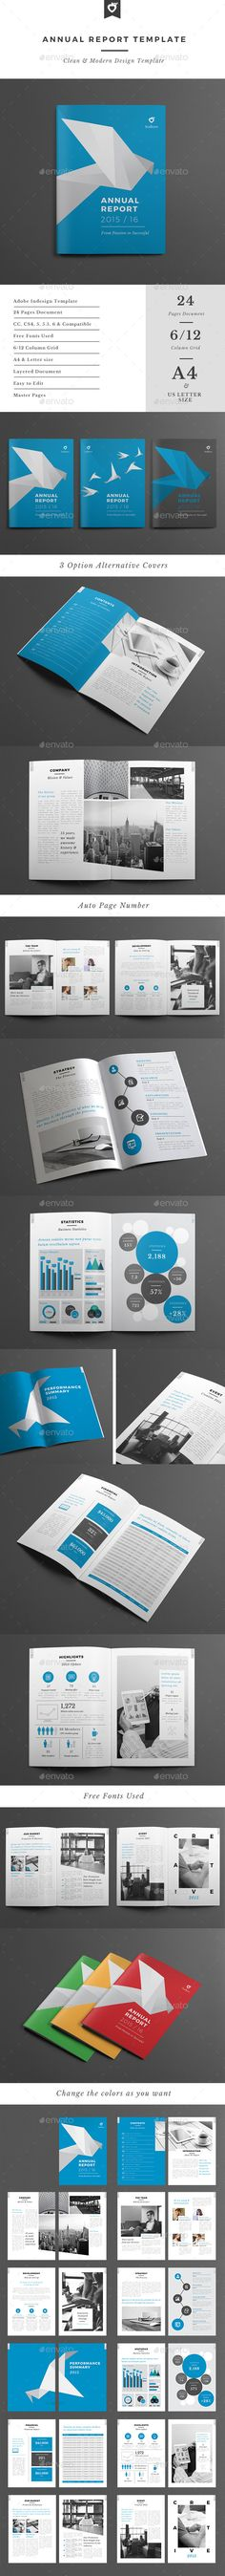 Annual Report Template - Corporate Brochure Template InDesign INDD. Download here: http://graphicriver.net/item/annual-report-template/12704622?s_rank=1779&ref=yinkira